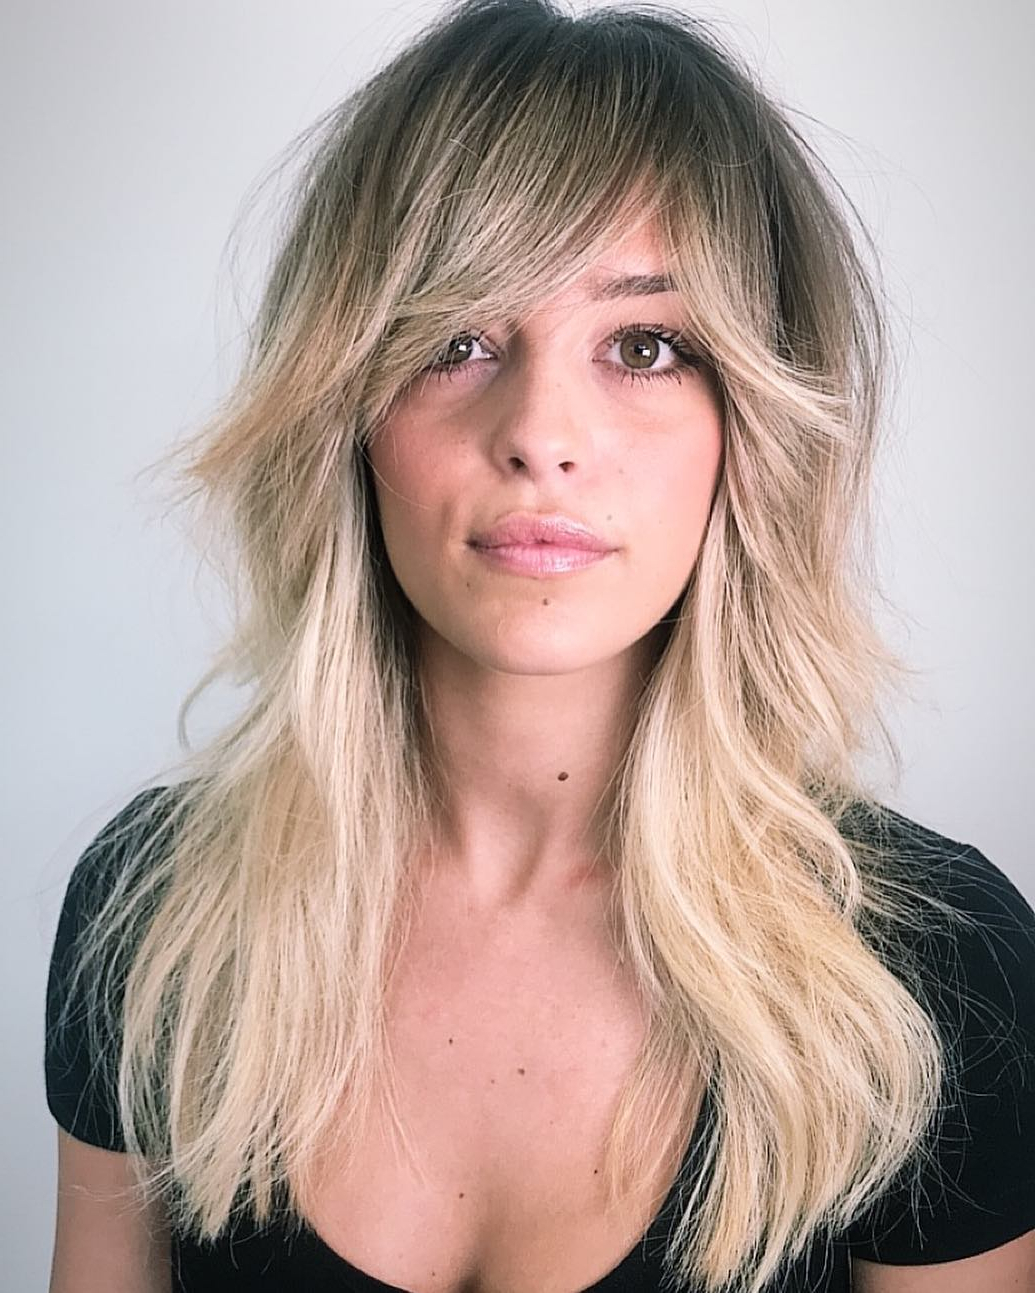 The Most Instagrammable Hairstyles With Bangs In 2019 In Pink Shaggy Haircuts (View 16 of 20)